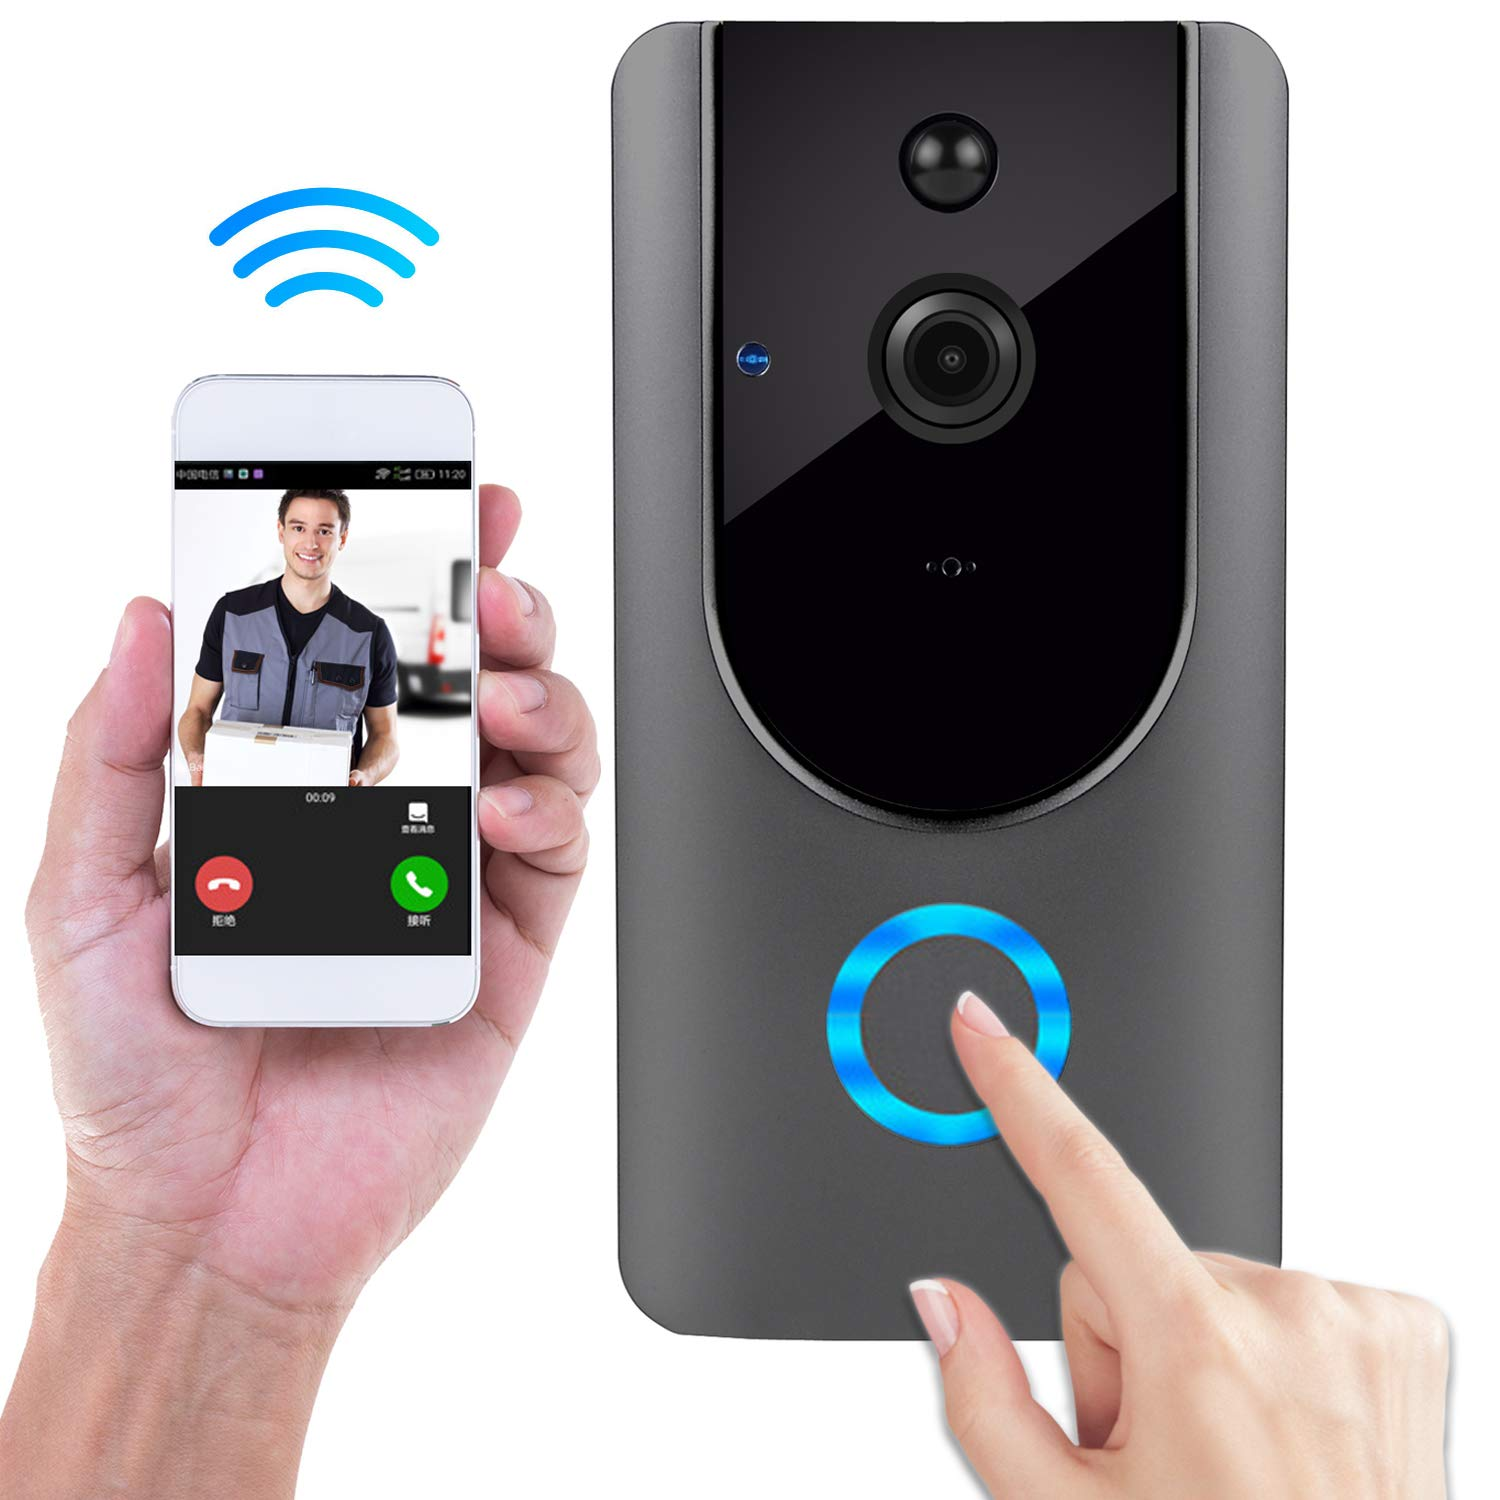 Wireless Doorbell, Smart Door Bells Home Security Bell Camera with Battery, Real-Time Video and Two-Way Talk Night Vision PIR Motion Detection by Lenyes